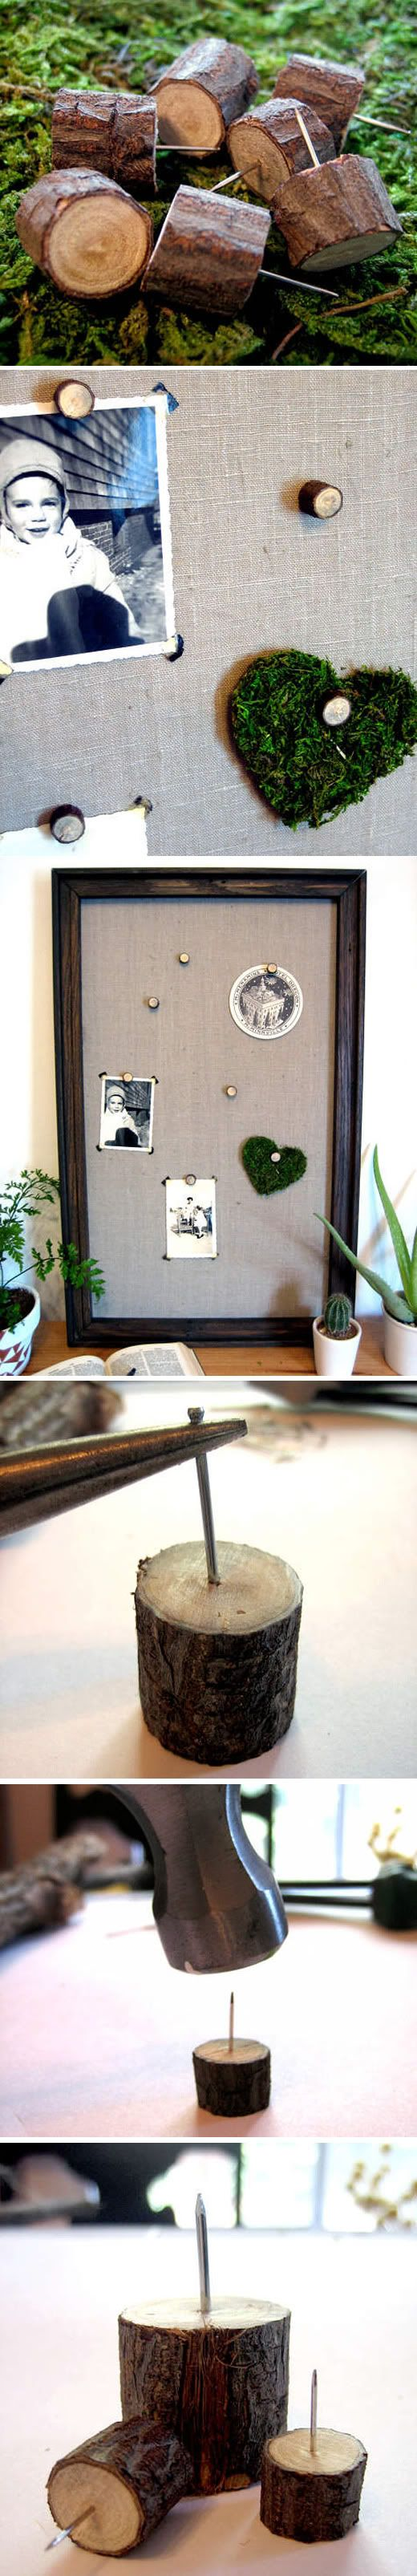 DIY Twig Push Pins #officesupplies #nature